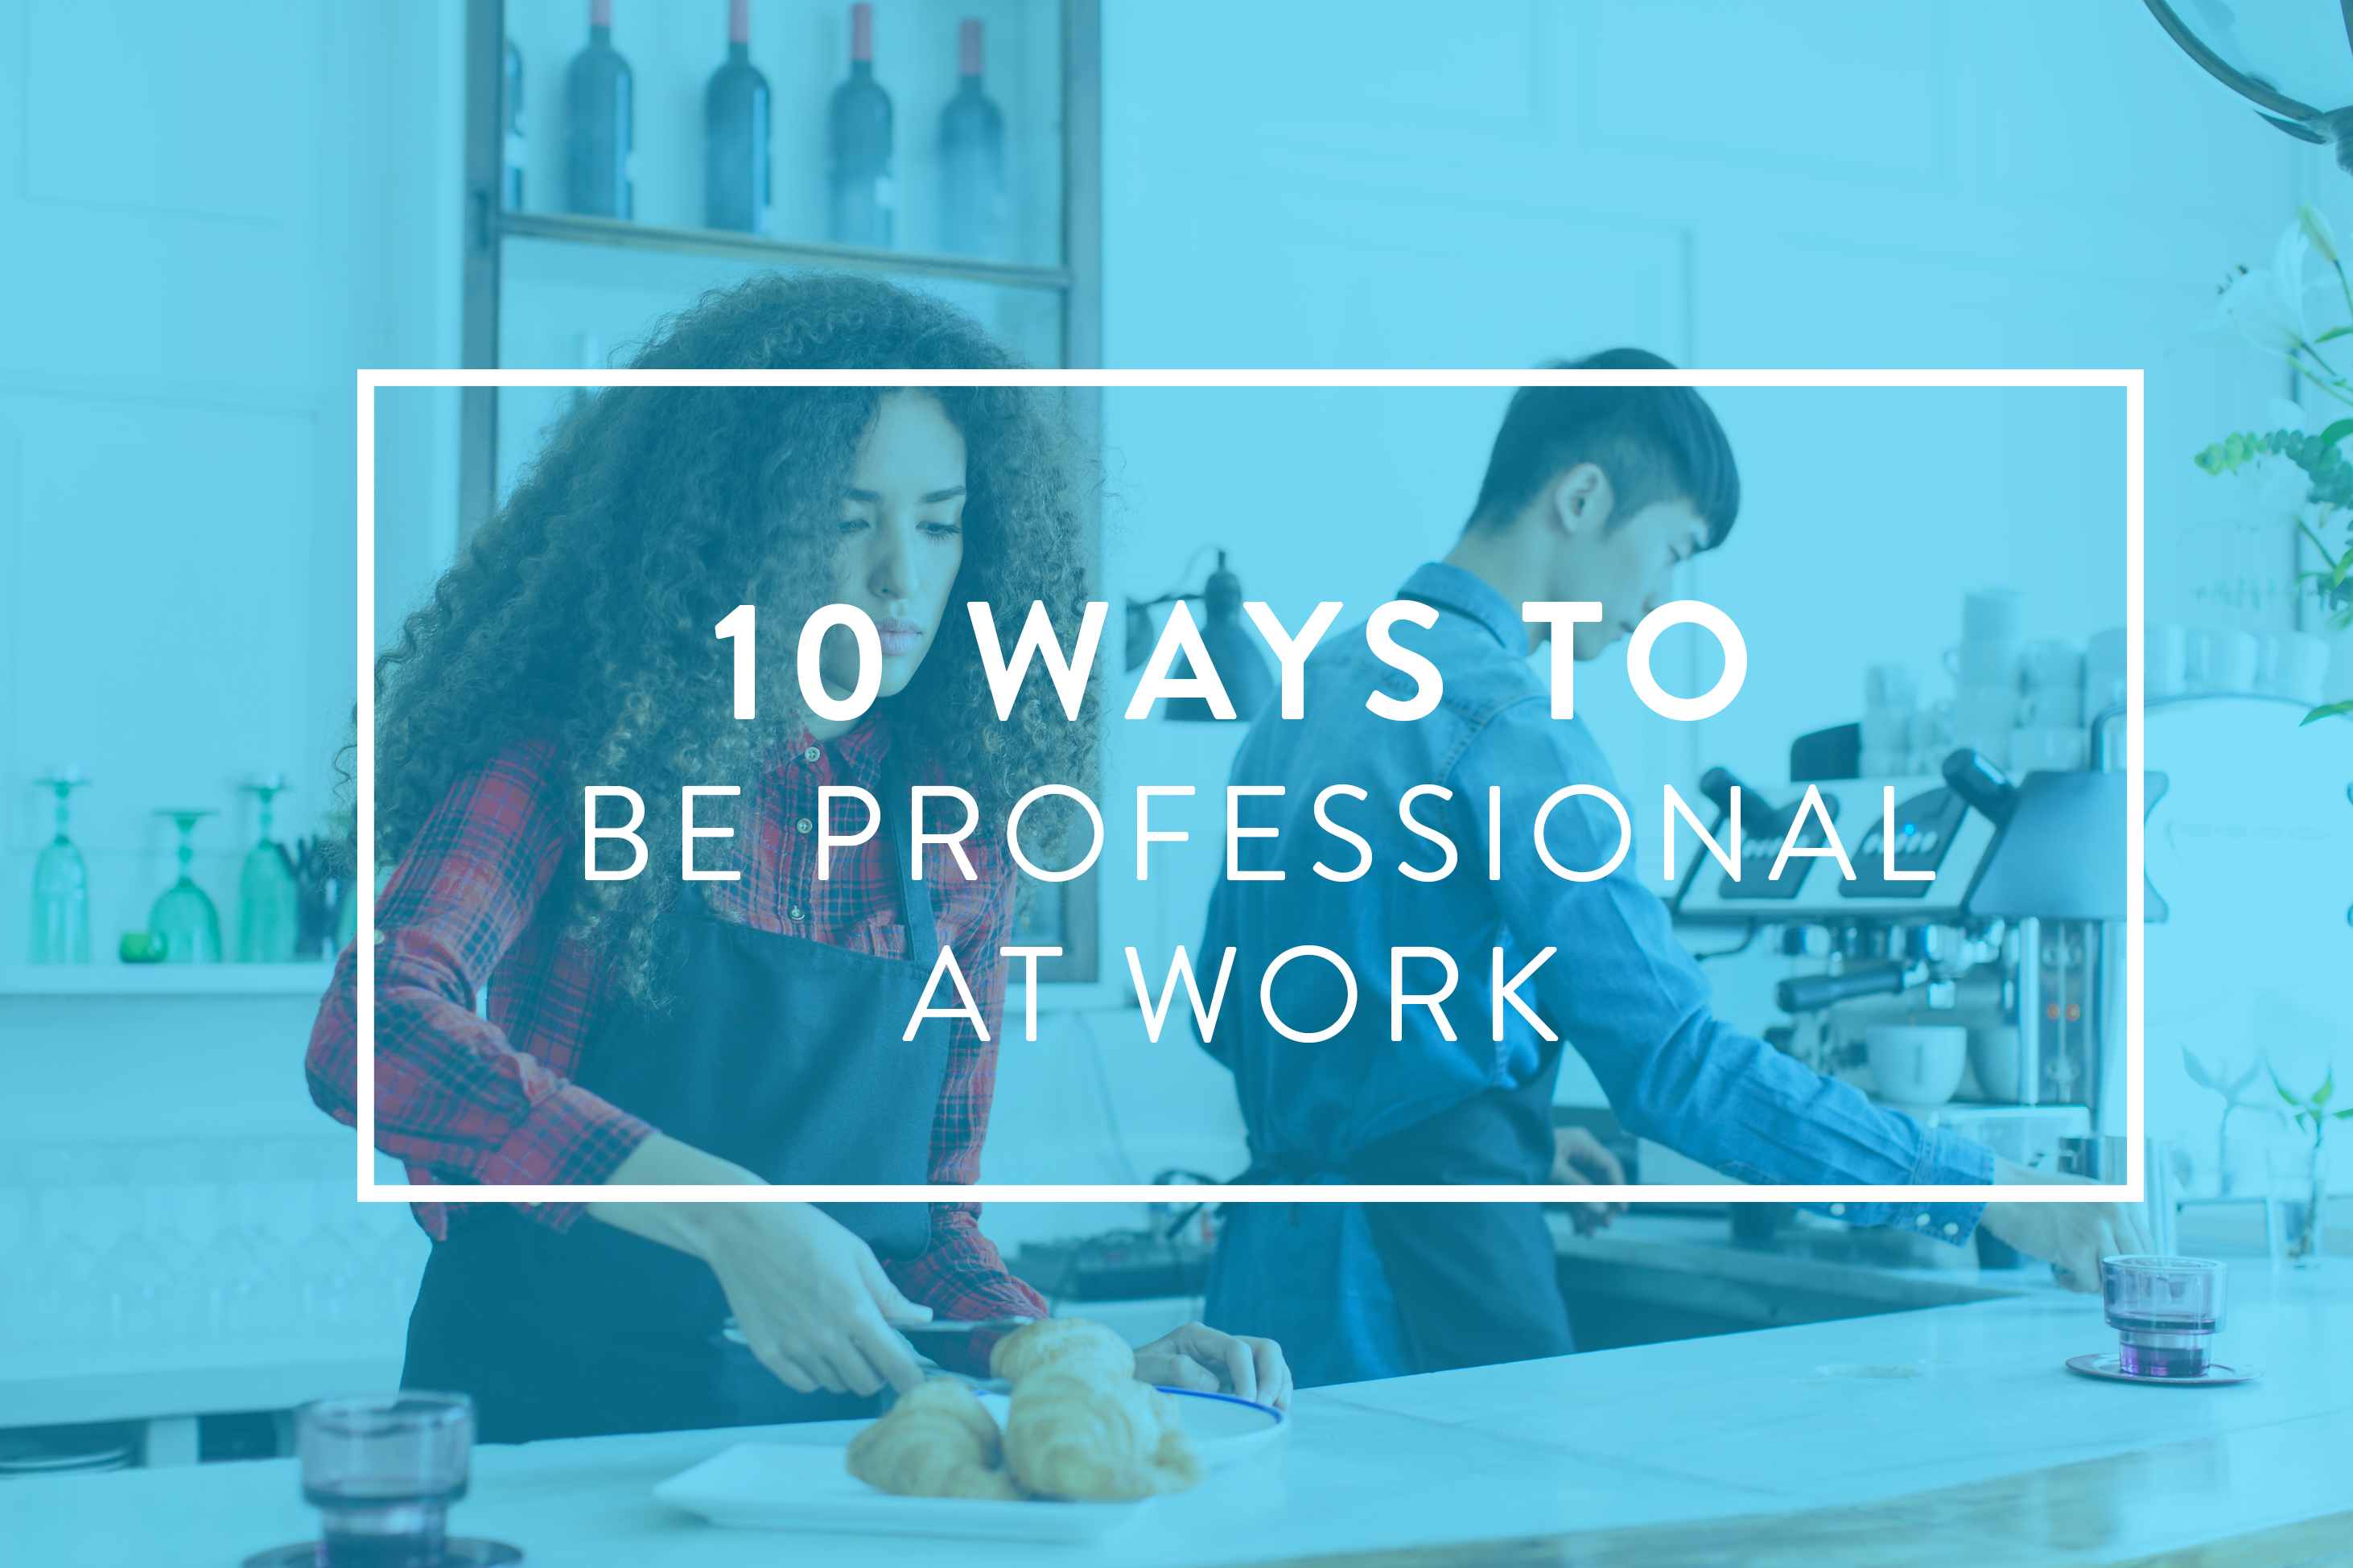 10 Ways To Be Professional At Work